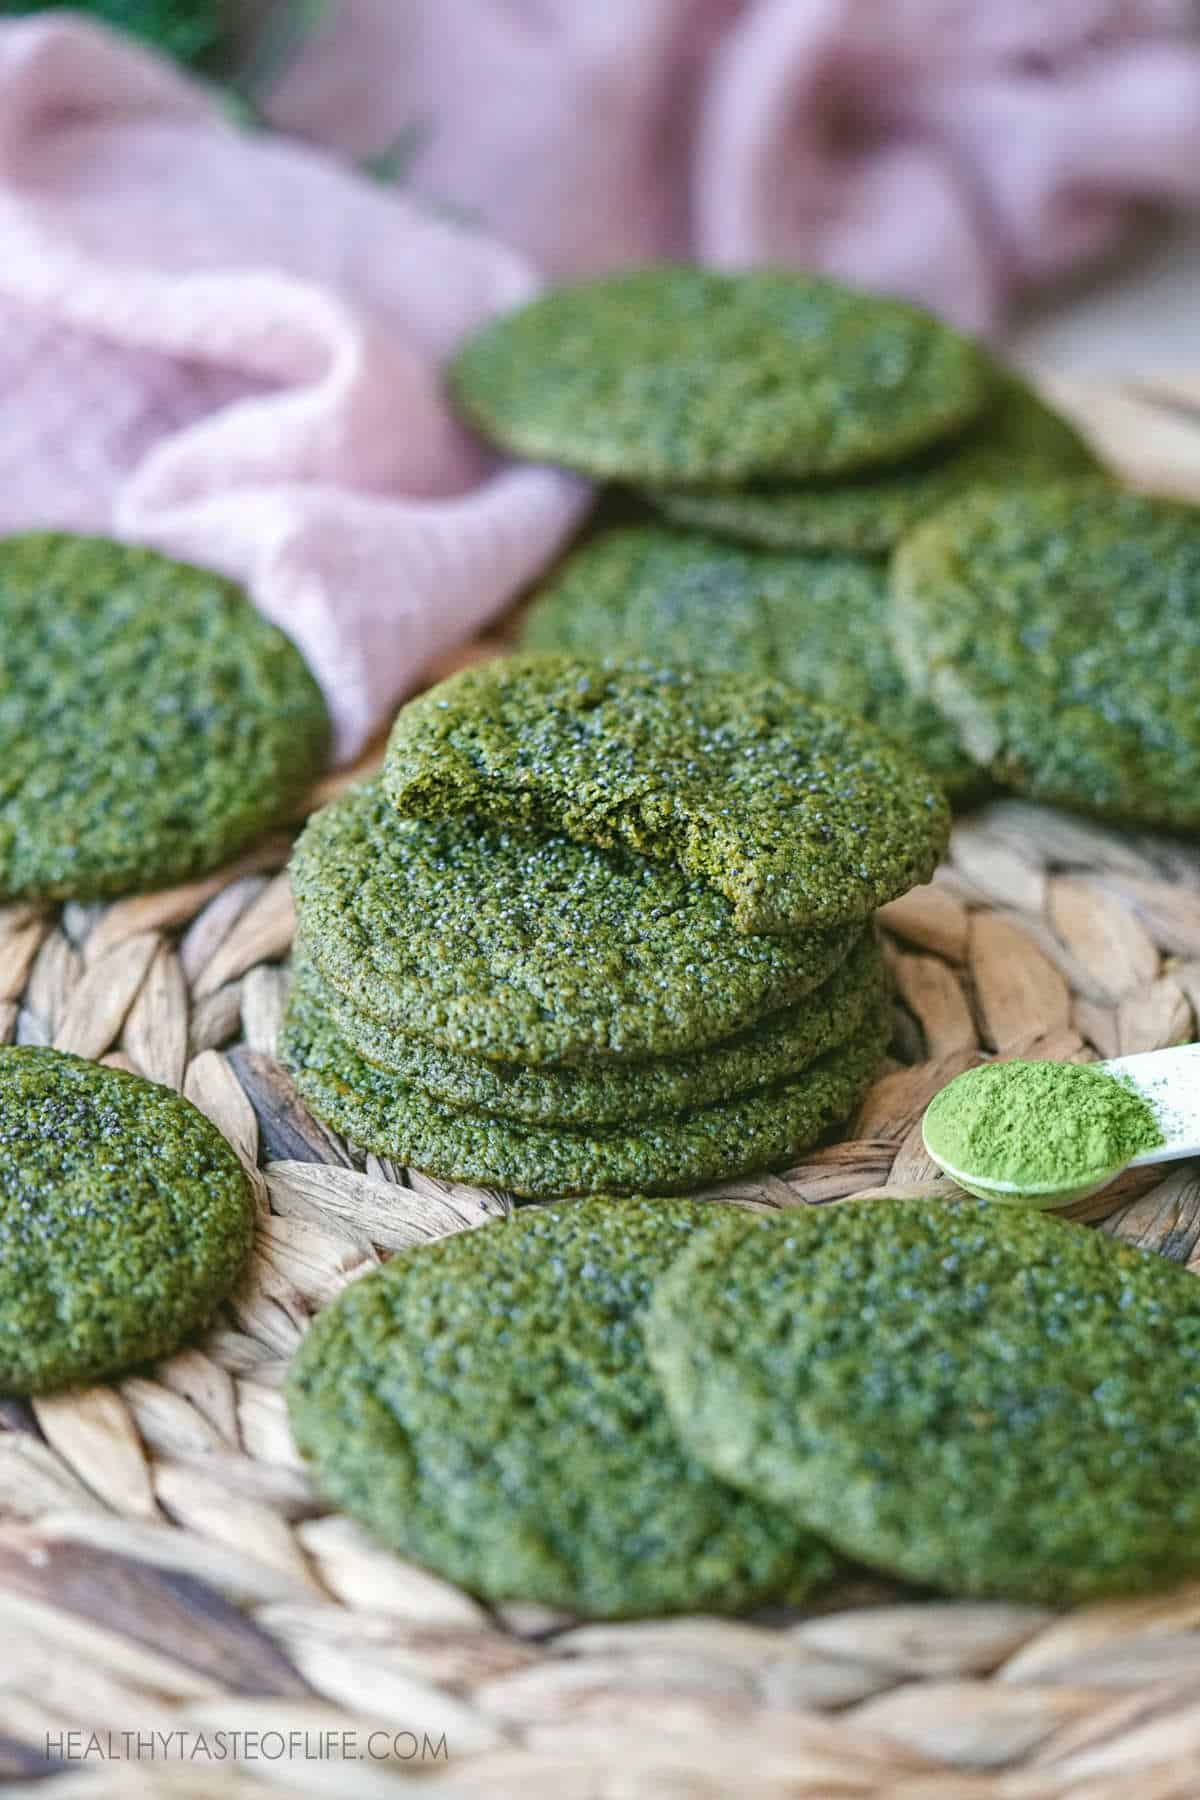 Healthy Vegan Matcha Cookies Recipe - Gluten Free Matcha Sugar Cookies With Oatmeal. Make matcha cookies from scratch with healthier ingredients: chewy inside, crisp on the outside: a healthy matcha dessert for your cup of tea #matchacookies #vegan #healthycookies #healthyoatmealcookies #glutenfreecookies #healthysugarcookies